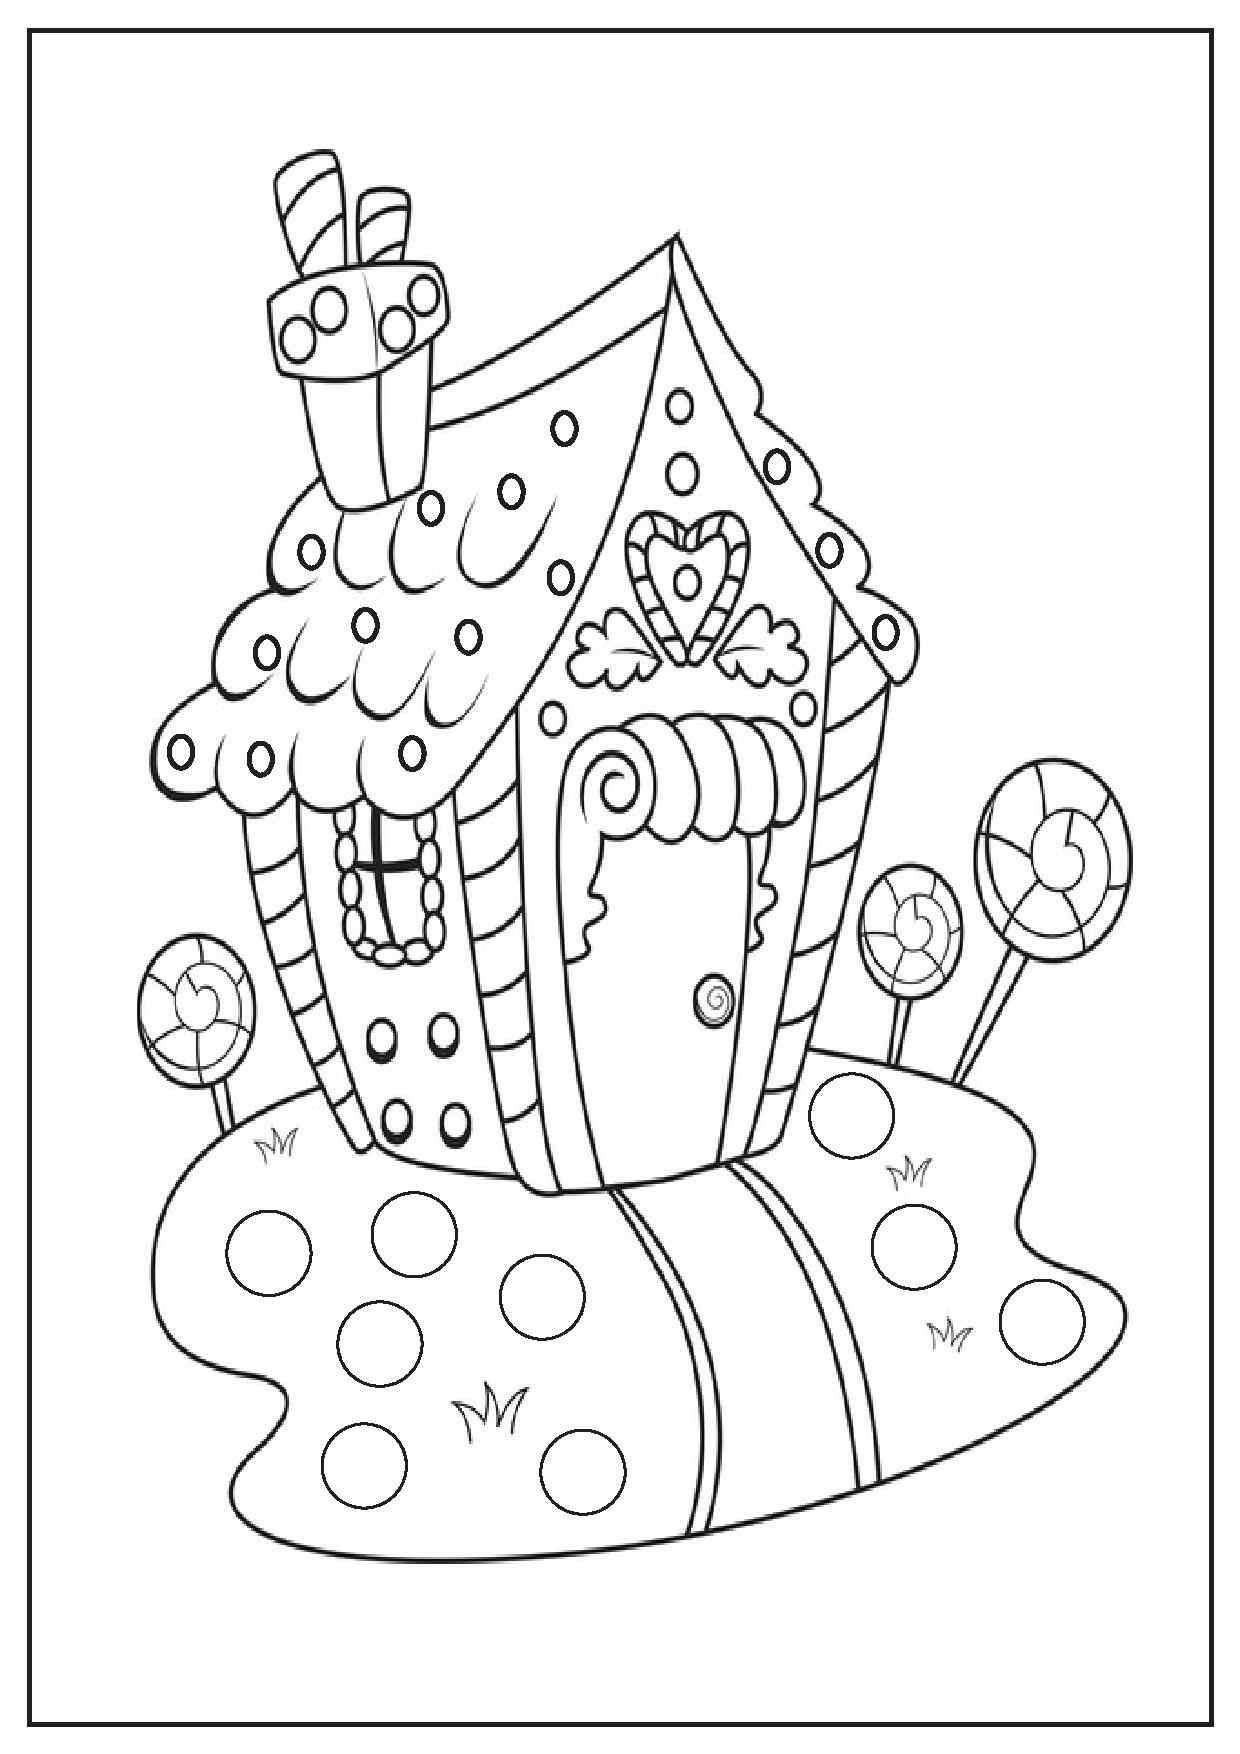 kindergarten coloring sheets only coloring pages coloring - Spring Coloring Sheets Free Printable